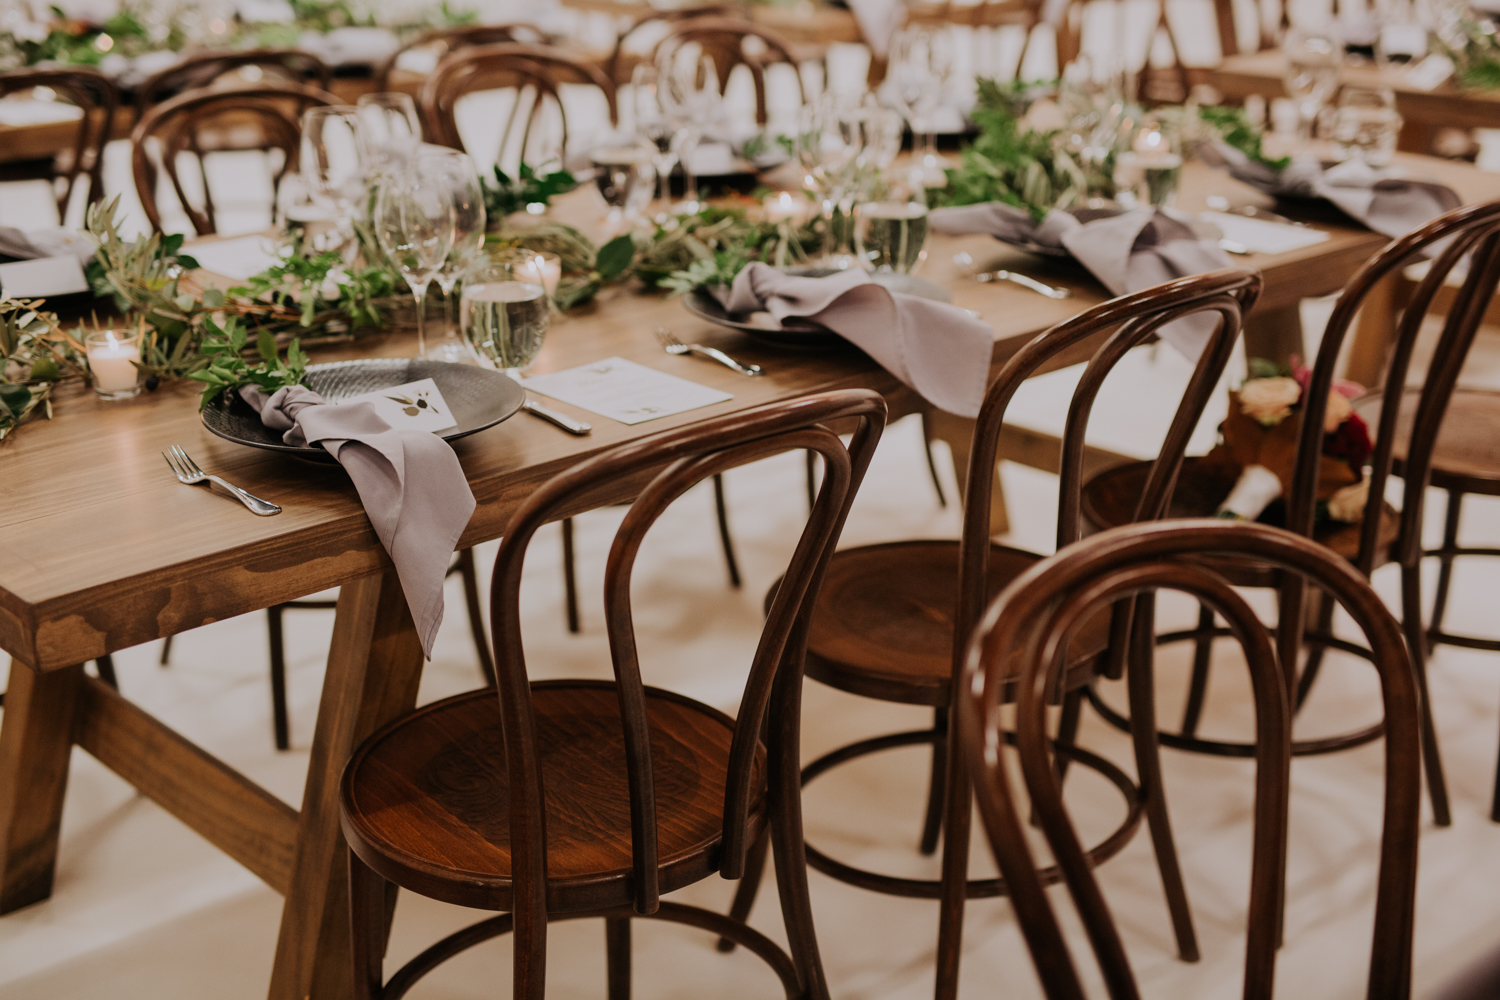 white+white weddings and events carrie and jay real wedding styling timber rustic studio warehouse venue bentwood chairs table setting